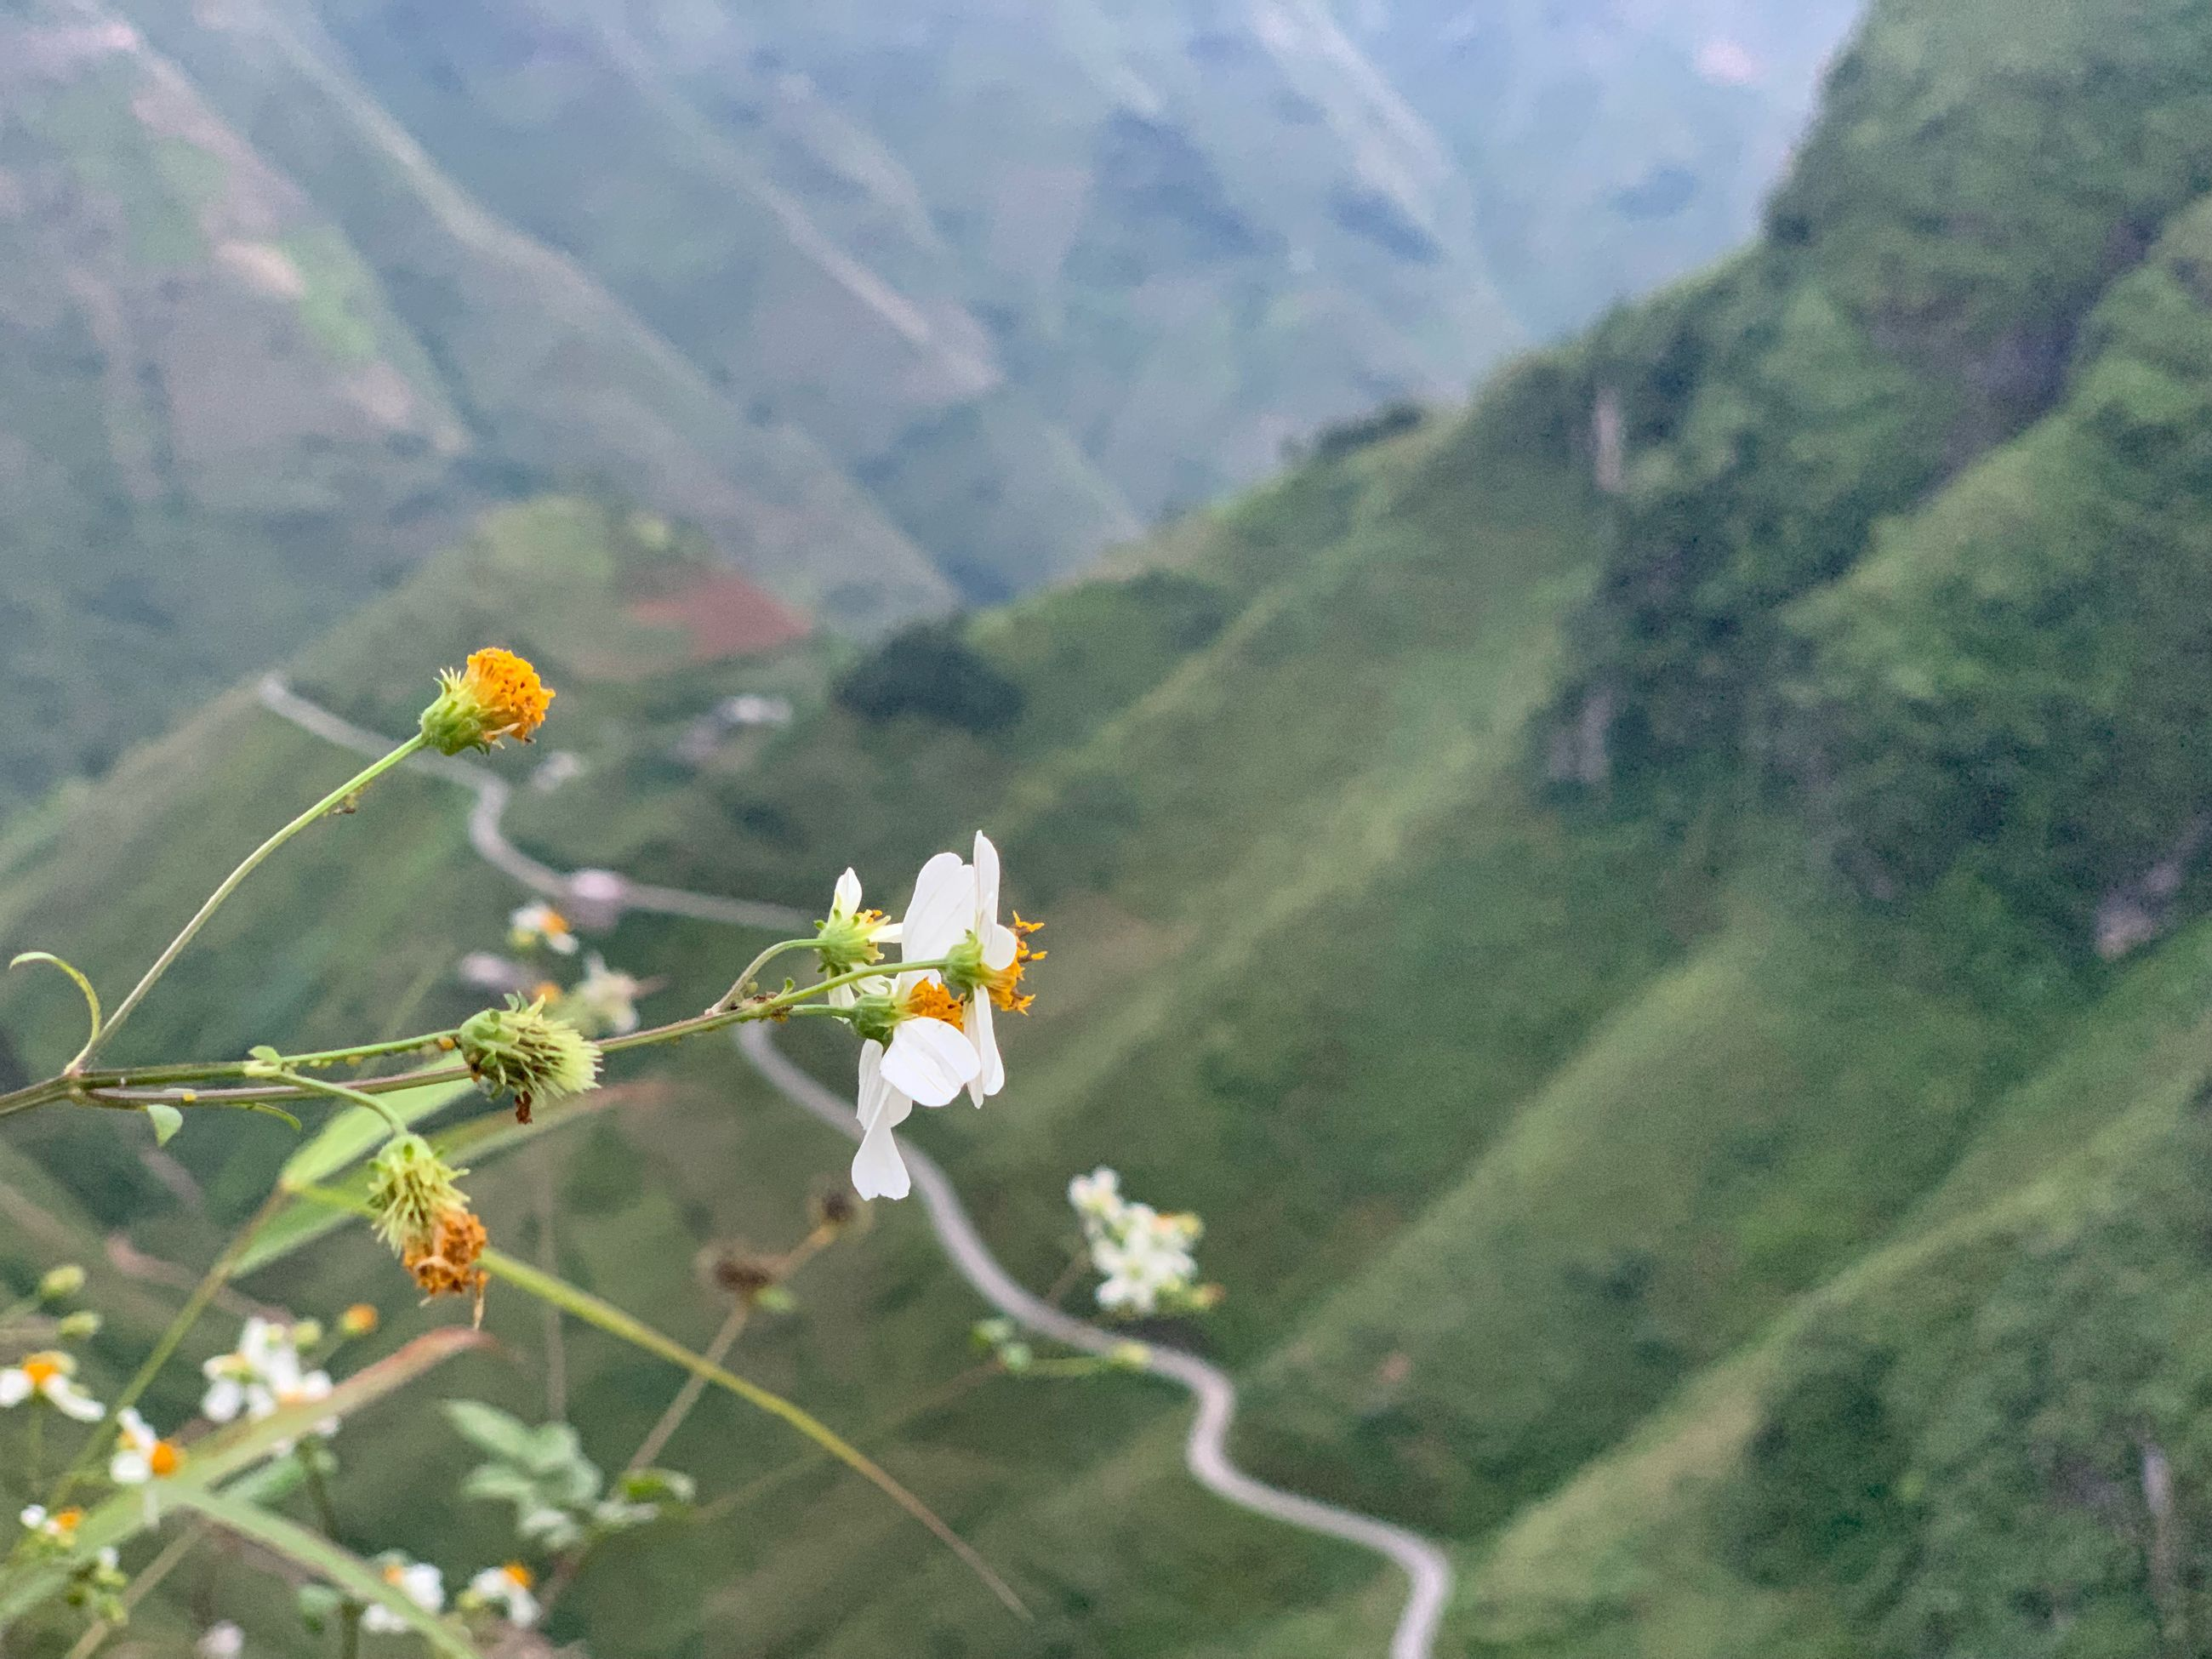 flowering plant, flower, beauty in nature, plant, growth, freshness, mountain, nature, vulnerability, fragility, focus on foreground, day, no people, landscape, scenics - nature, tranquility, flower head, petal, close-up, tranquil scene, outdoors